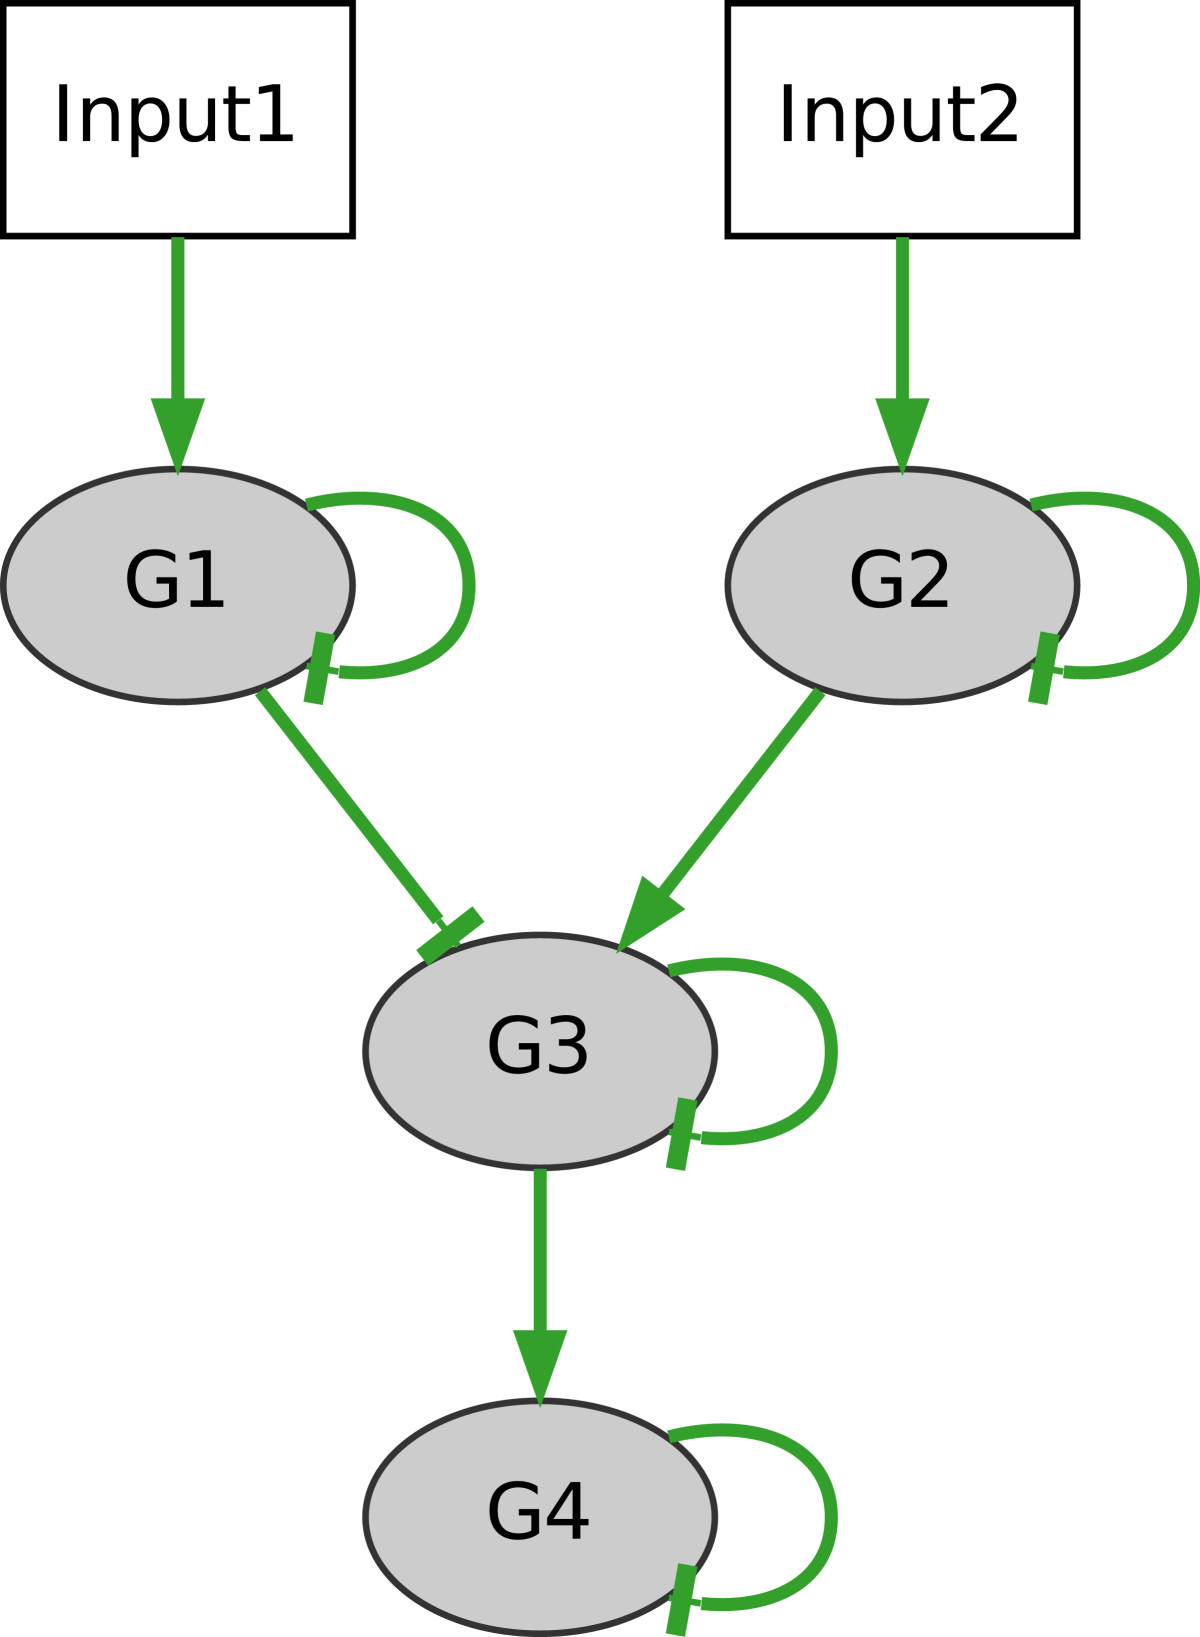 https://static-content.springer.com/image/art%3A10.1186%2F1752-0509-7-1/MediaObjects/12918_2012_Article_1058_Fig6_HTML.jpg